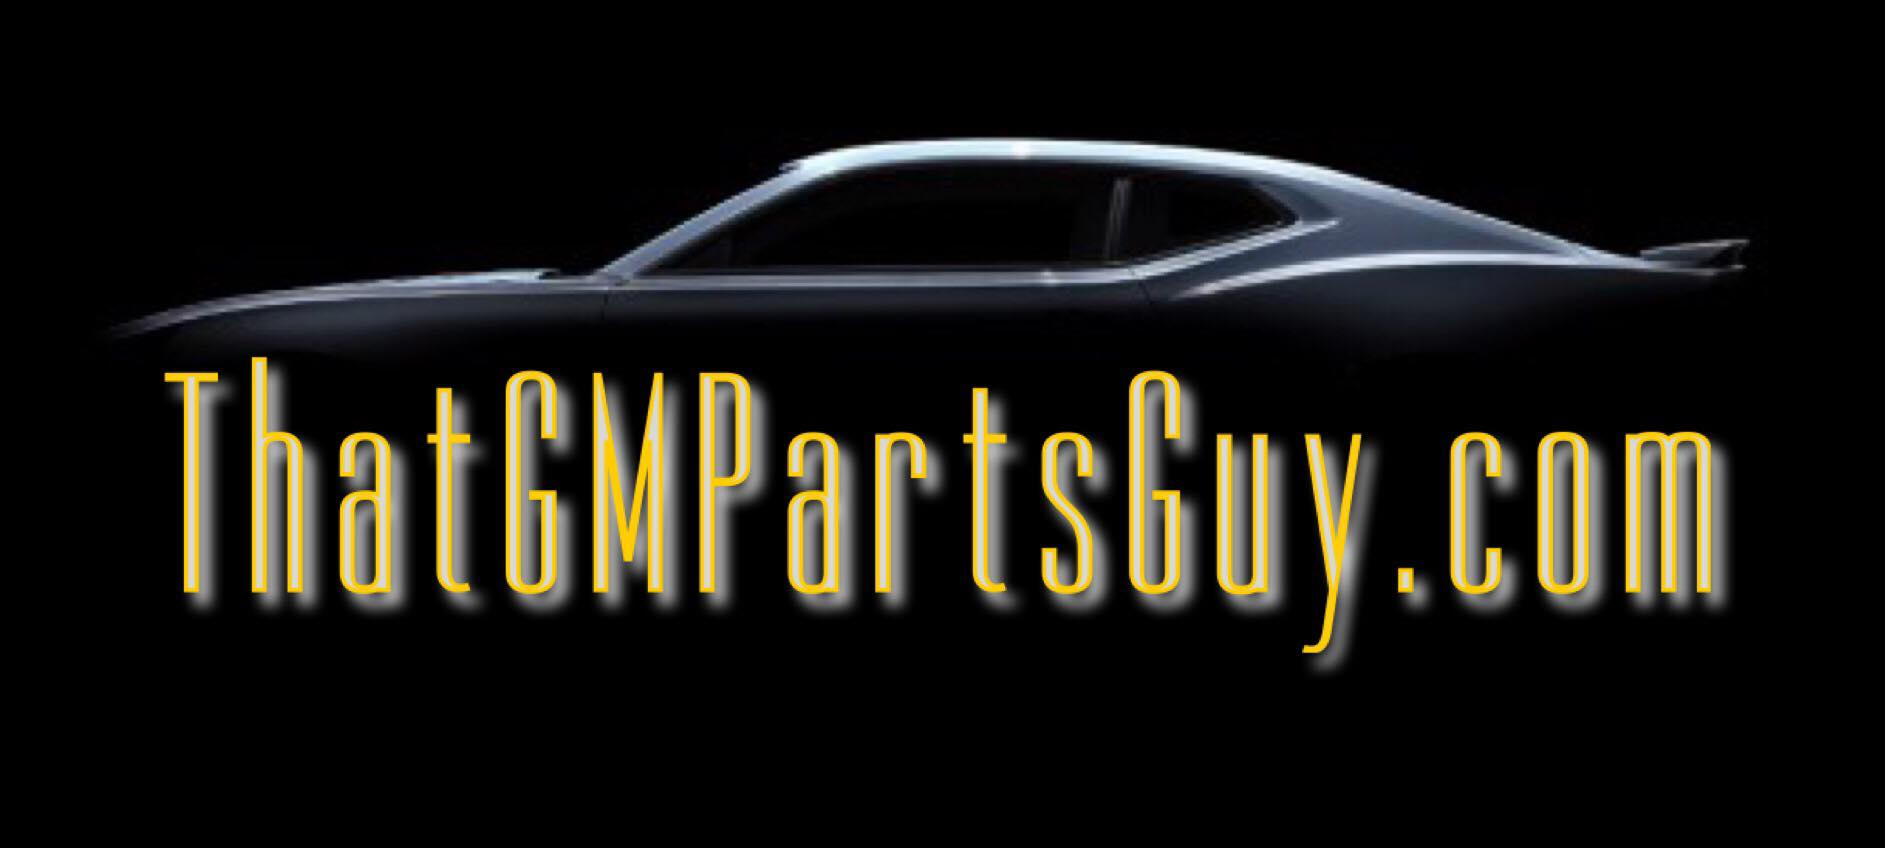 About Us That Gm Parts Guy